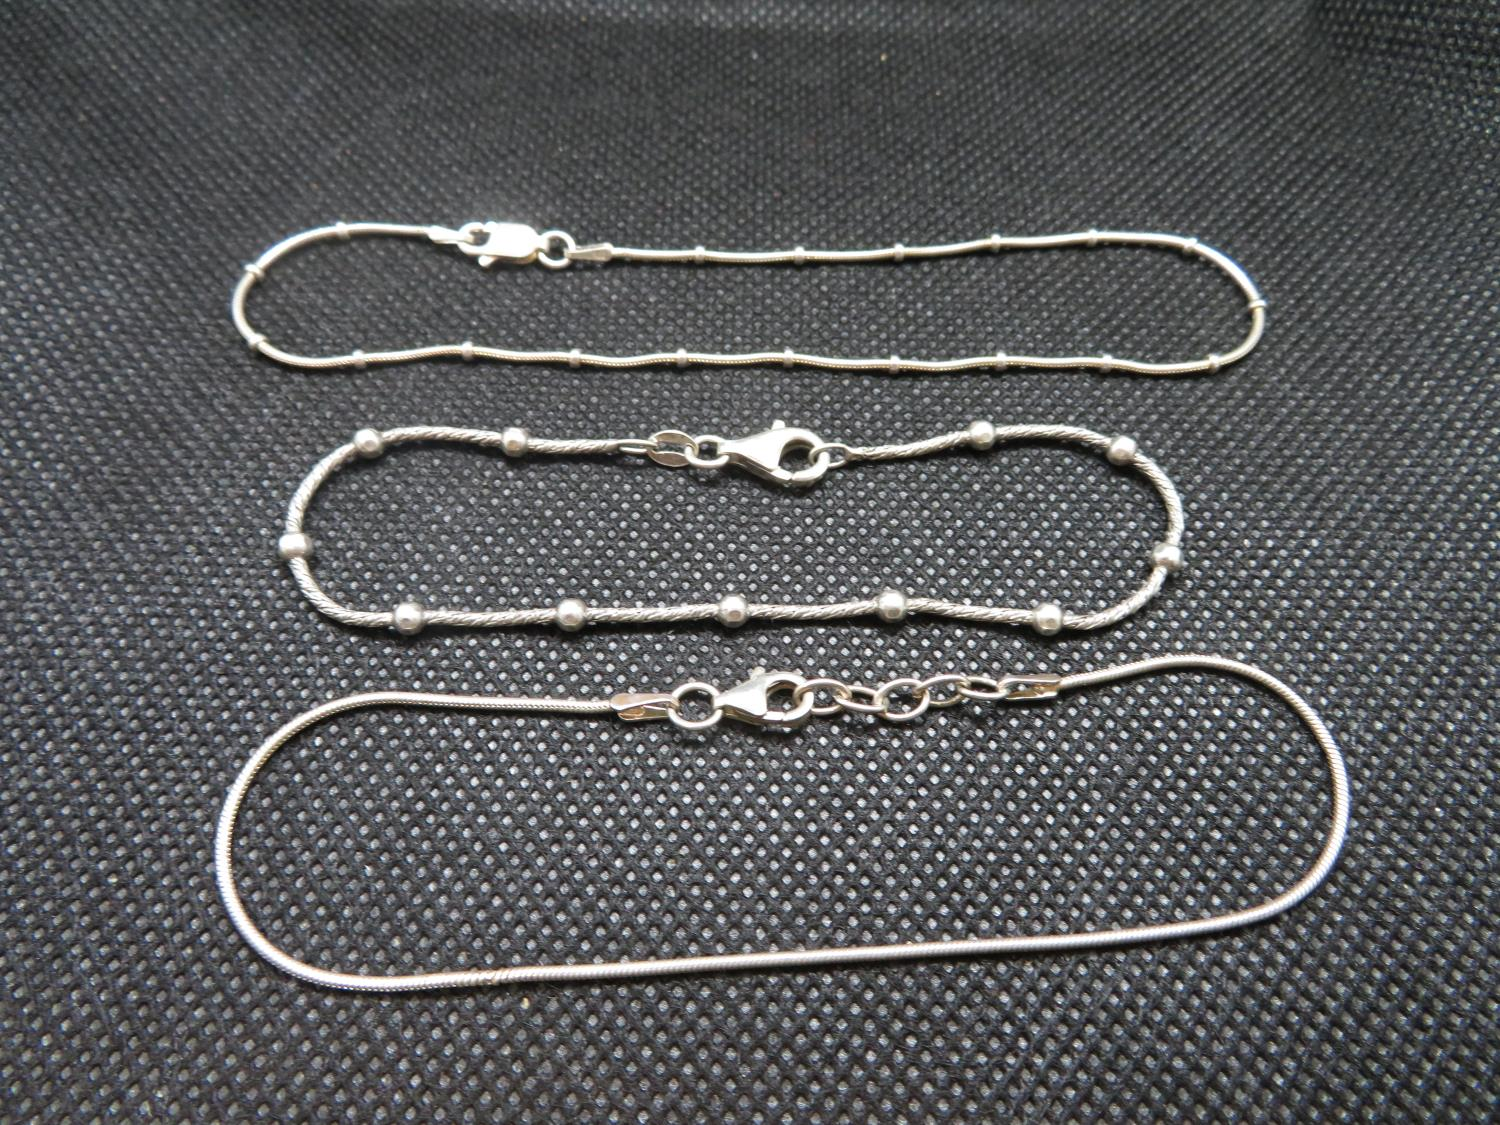 Lot 43 - Job lot of 2 silver bracelets and ankle chain 9g